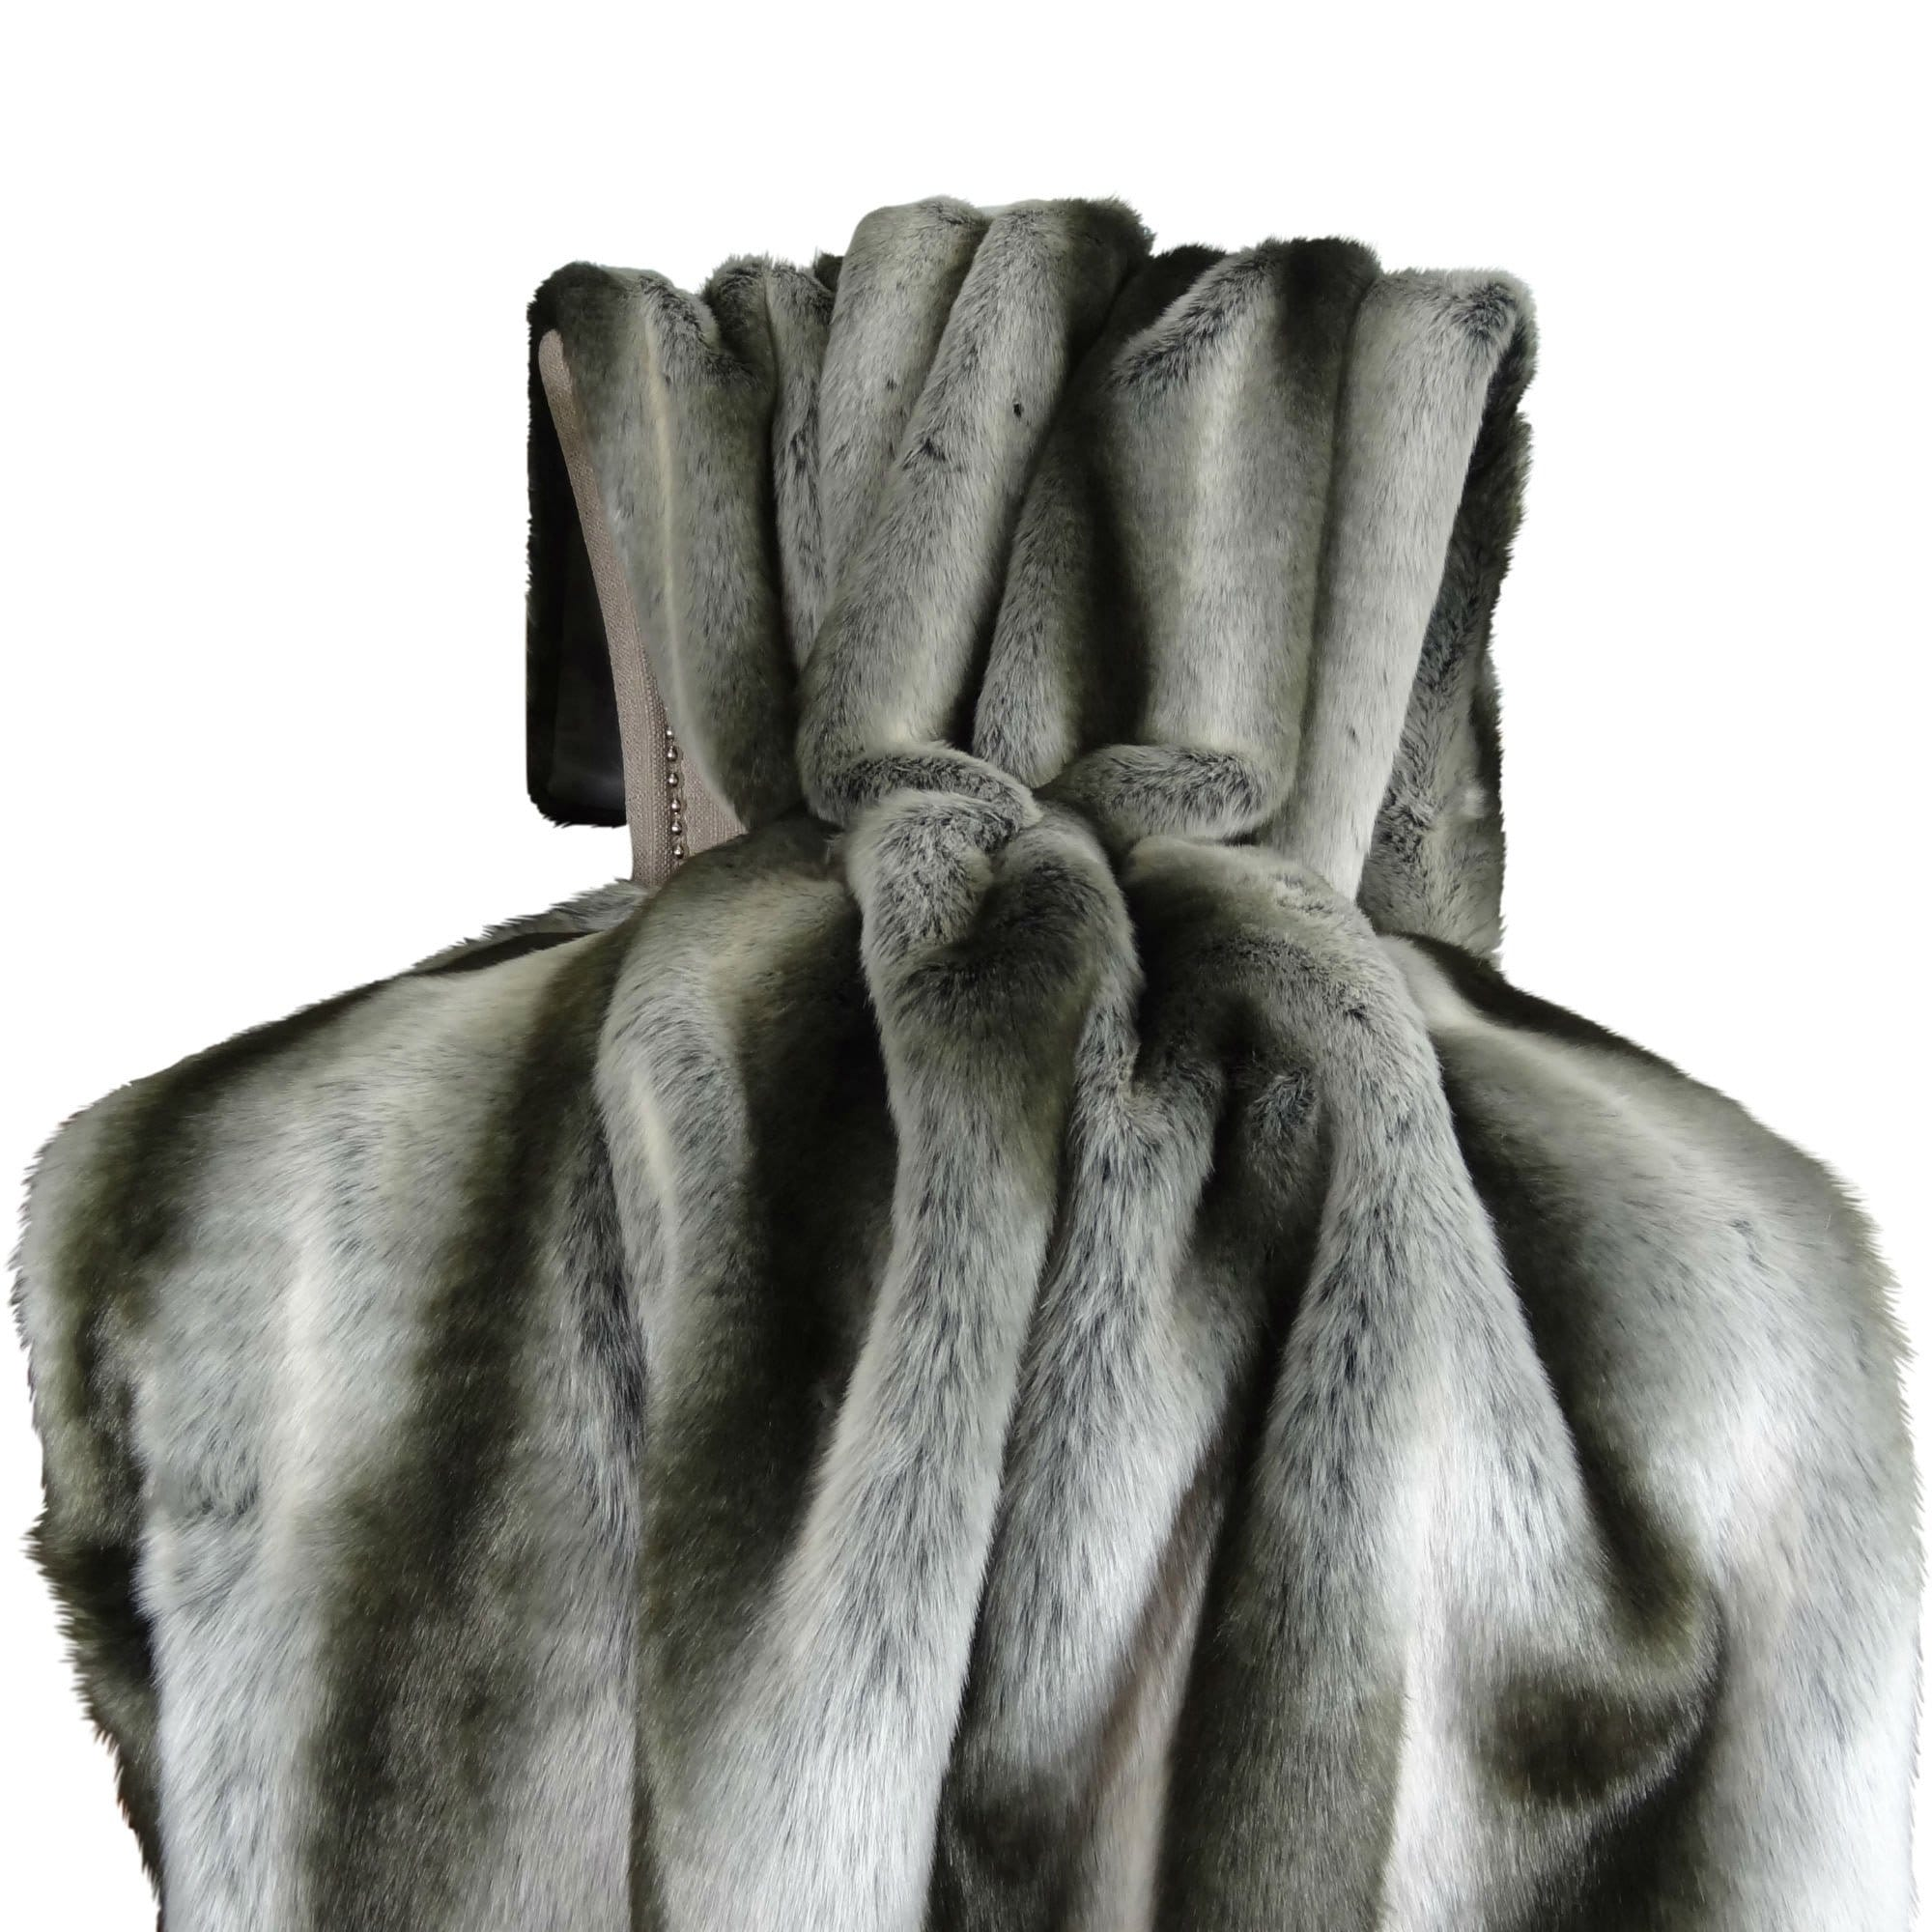 Faux fur throw blanket Oversized Thomas Collection Luxury Gray Silver Chinchilla Faux Fur Throw Blanket Handmade In Usa 16430t Overstock Shop Thomas Collection Luxury Gray Silver Chinchilla Faux Fur Throw